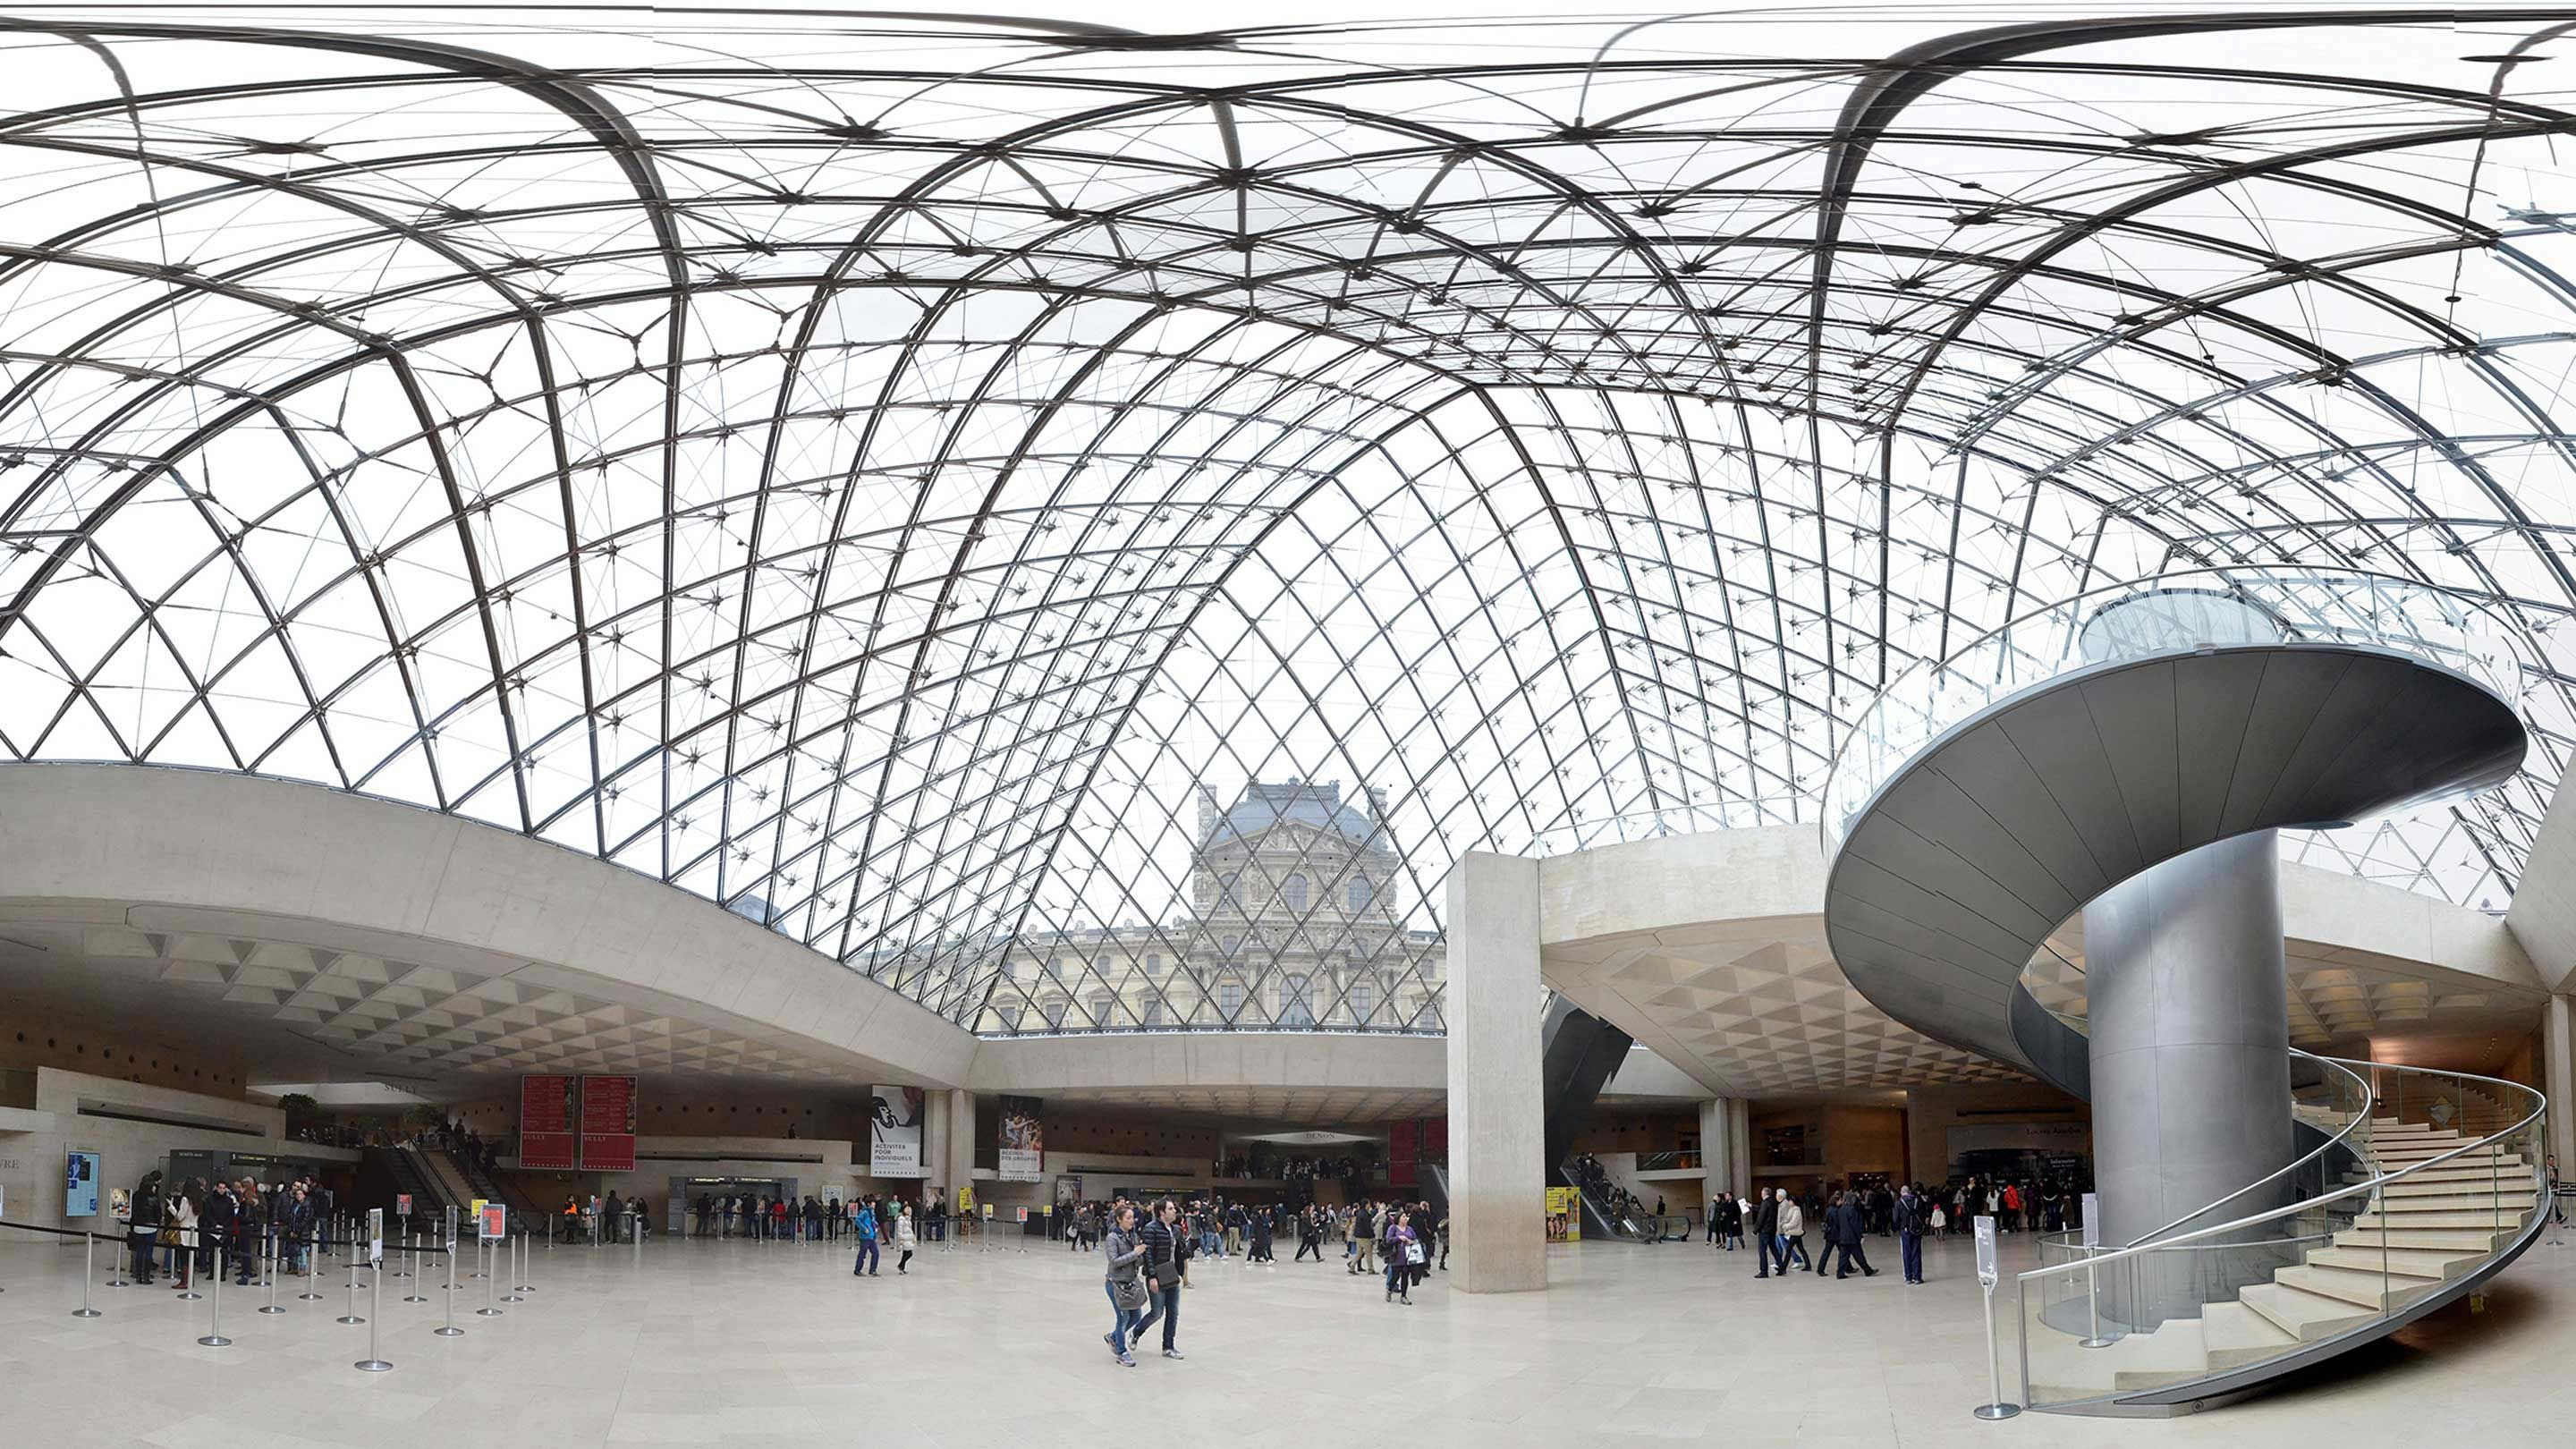 Panoramic view from under the glass pyramid at the Louvre in Paris.